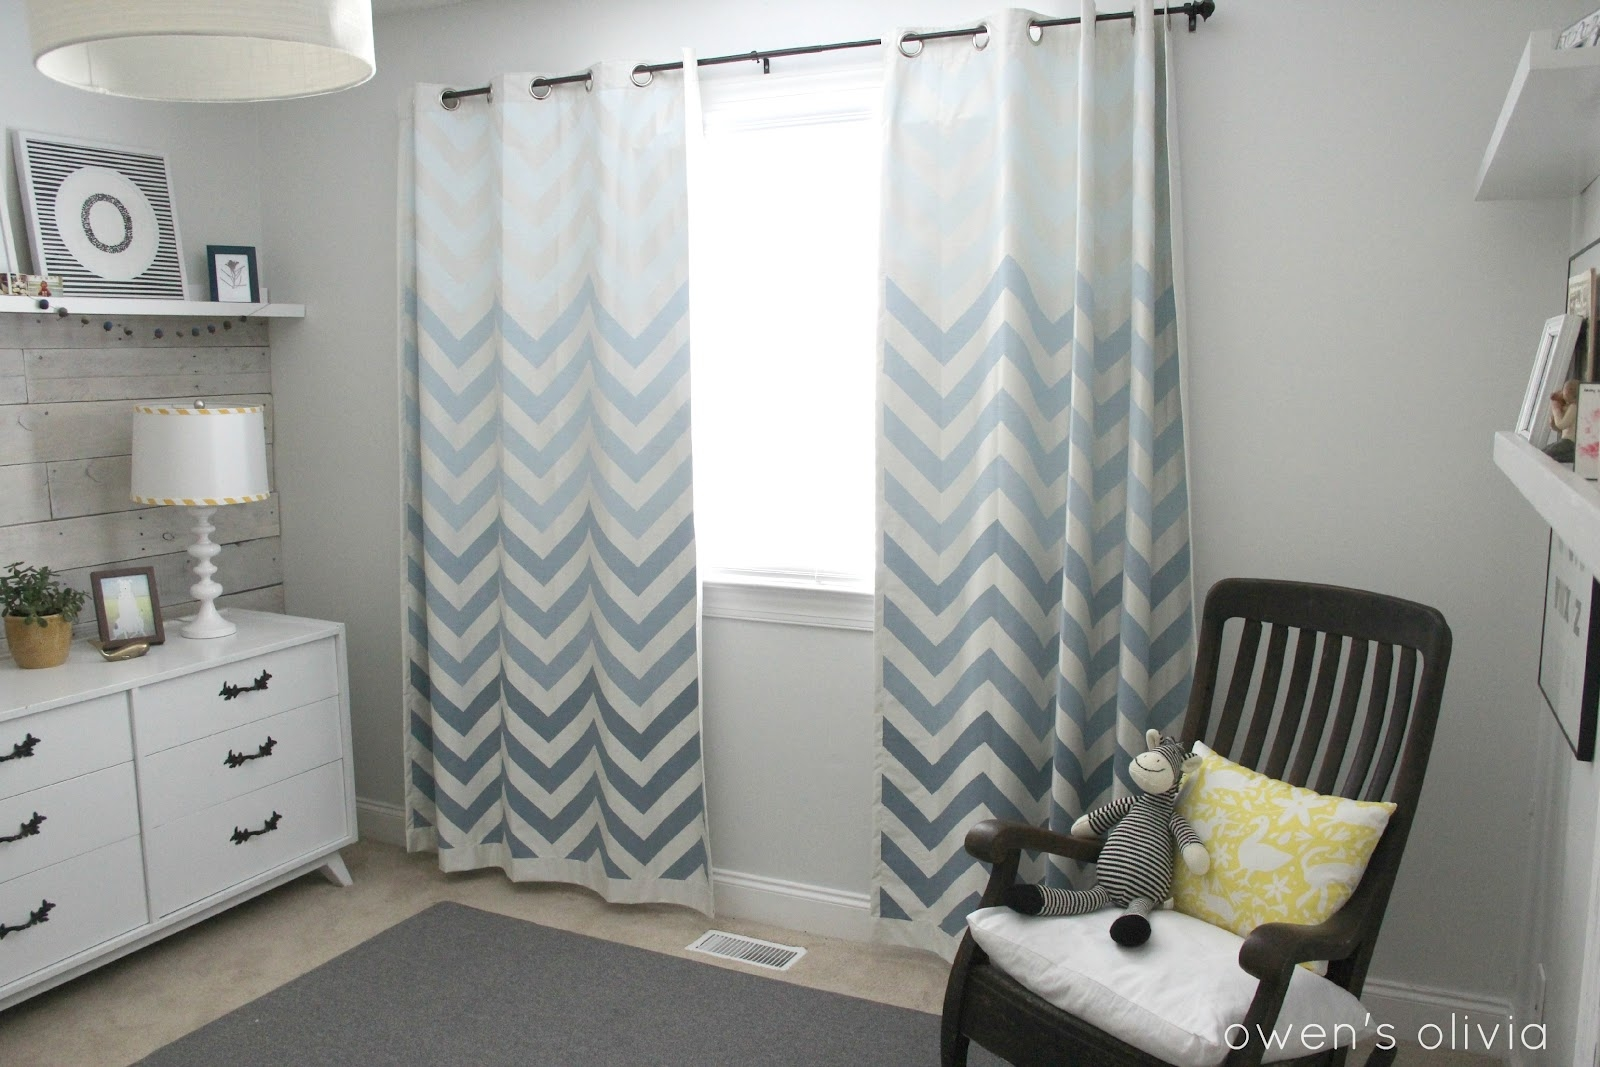 Ombre Chevron Curtains In Boys Nursery Regarding Blue Curtains For Boys Room (Image 24 of 25)